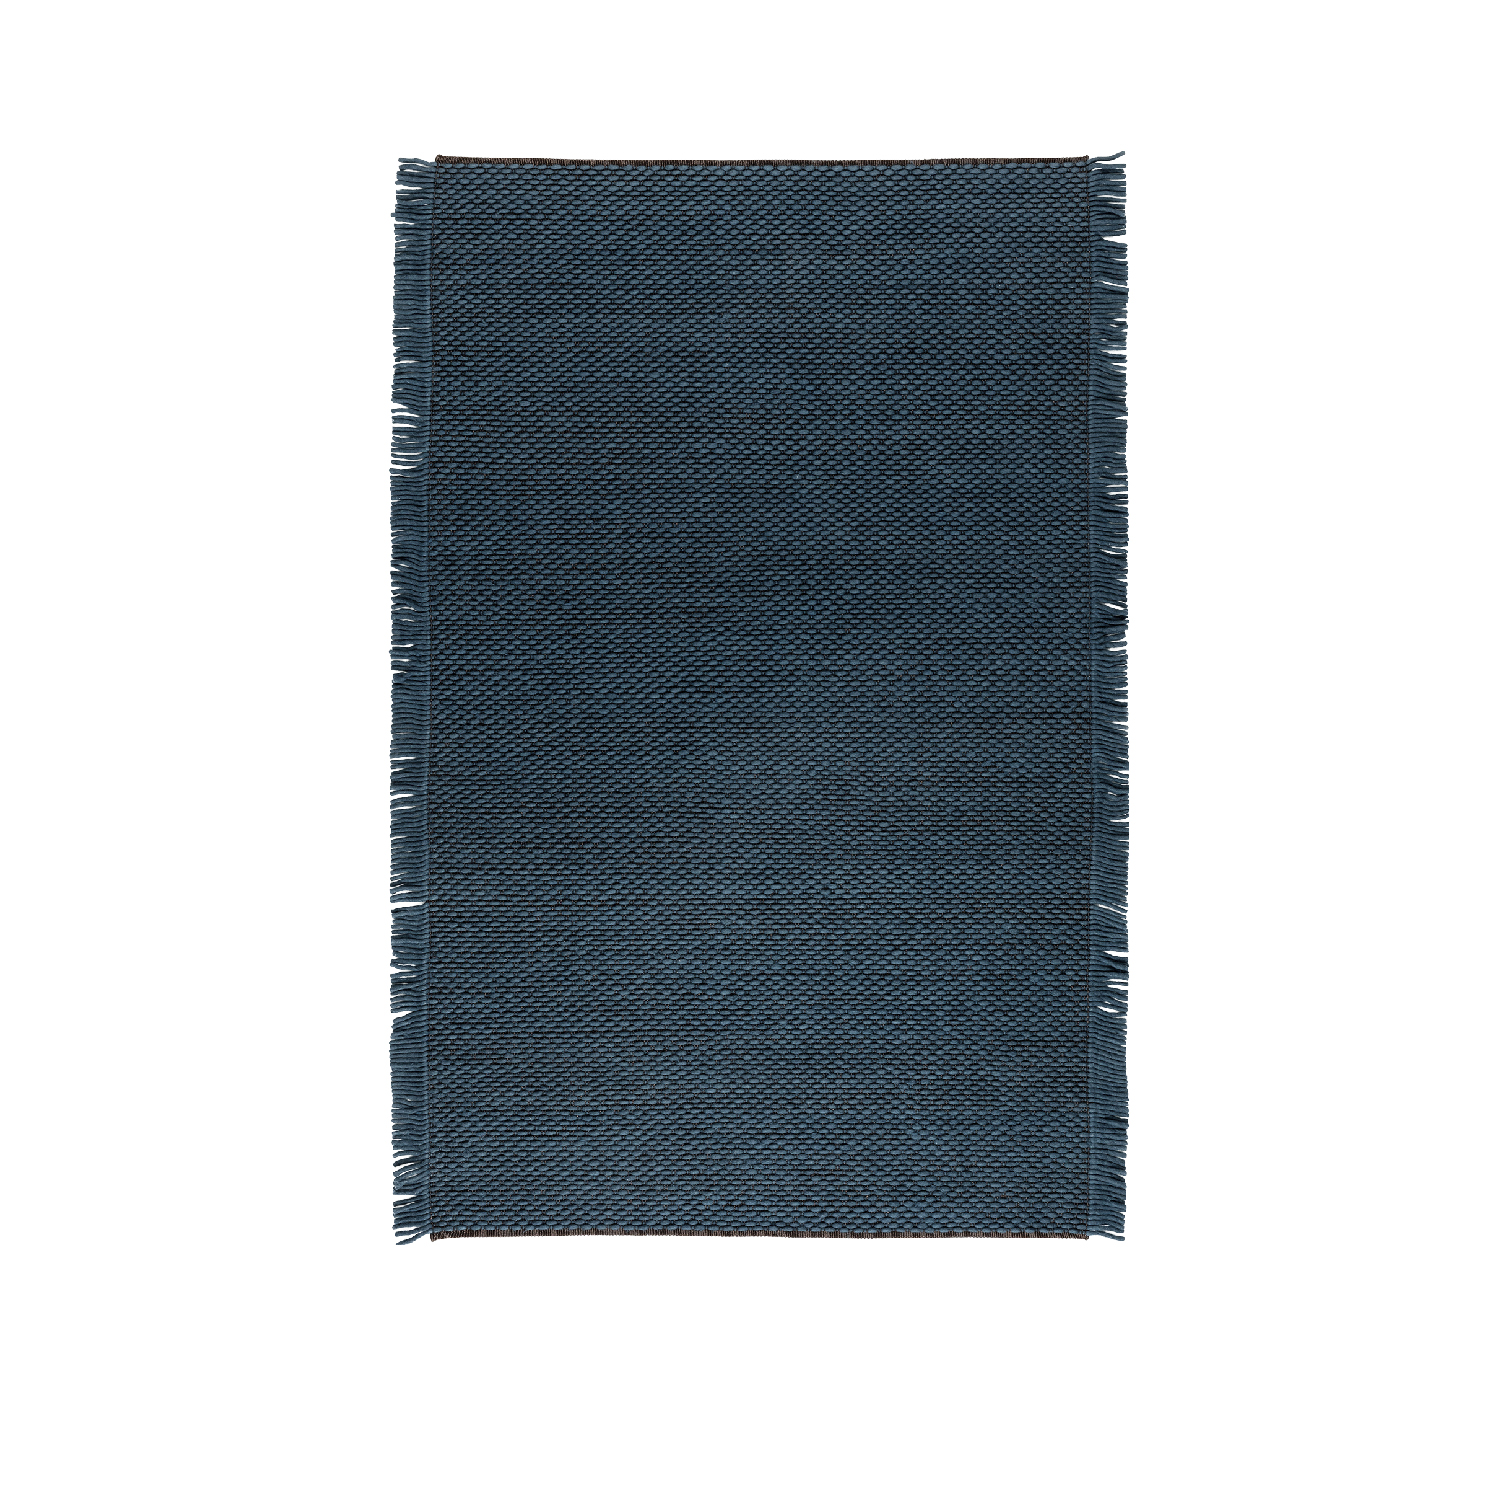 Kura - Thin felt cords appear and disappear from the polyester warp and find their identity in the straight, compact fringes on the side.  Dimensions: 170 x 240 cm – 200 x 300 cm Special dimension available on request  Composition: 50% felt, 50% polyester  Total weight: 4 Kg mq | Matter of Stuff